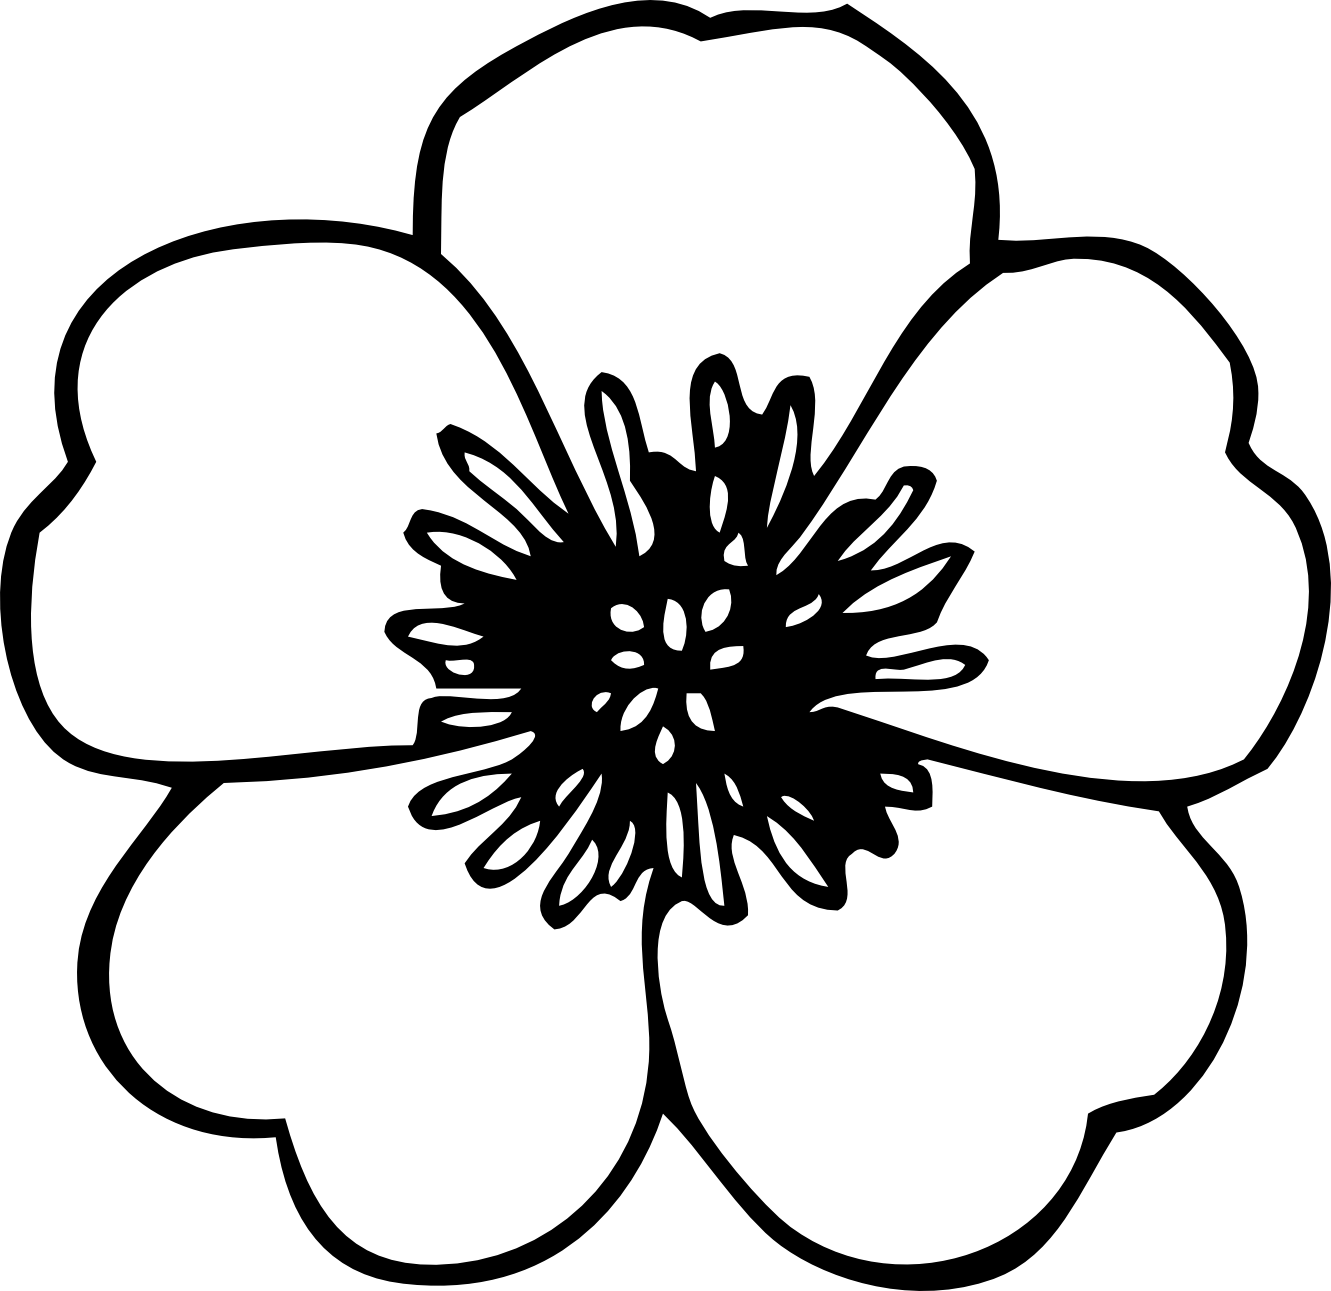 Flower clipart bw clipart freeuse Simple Flower Clipart Black And White clipart freeuse